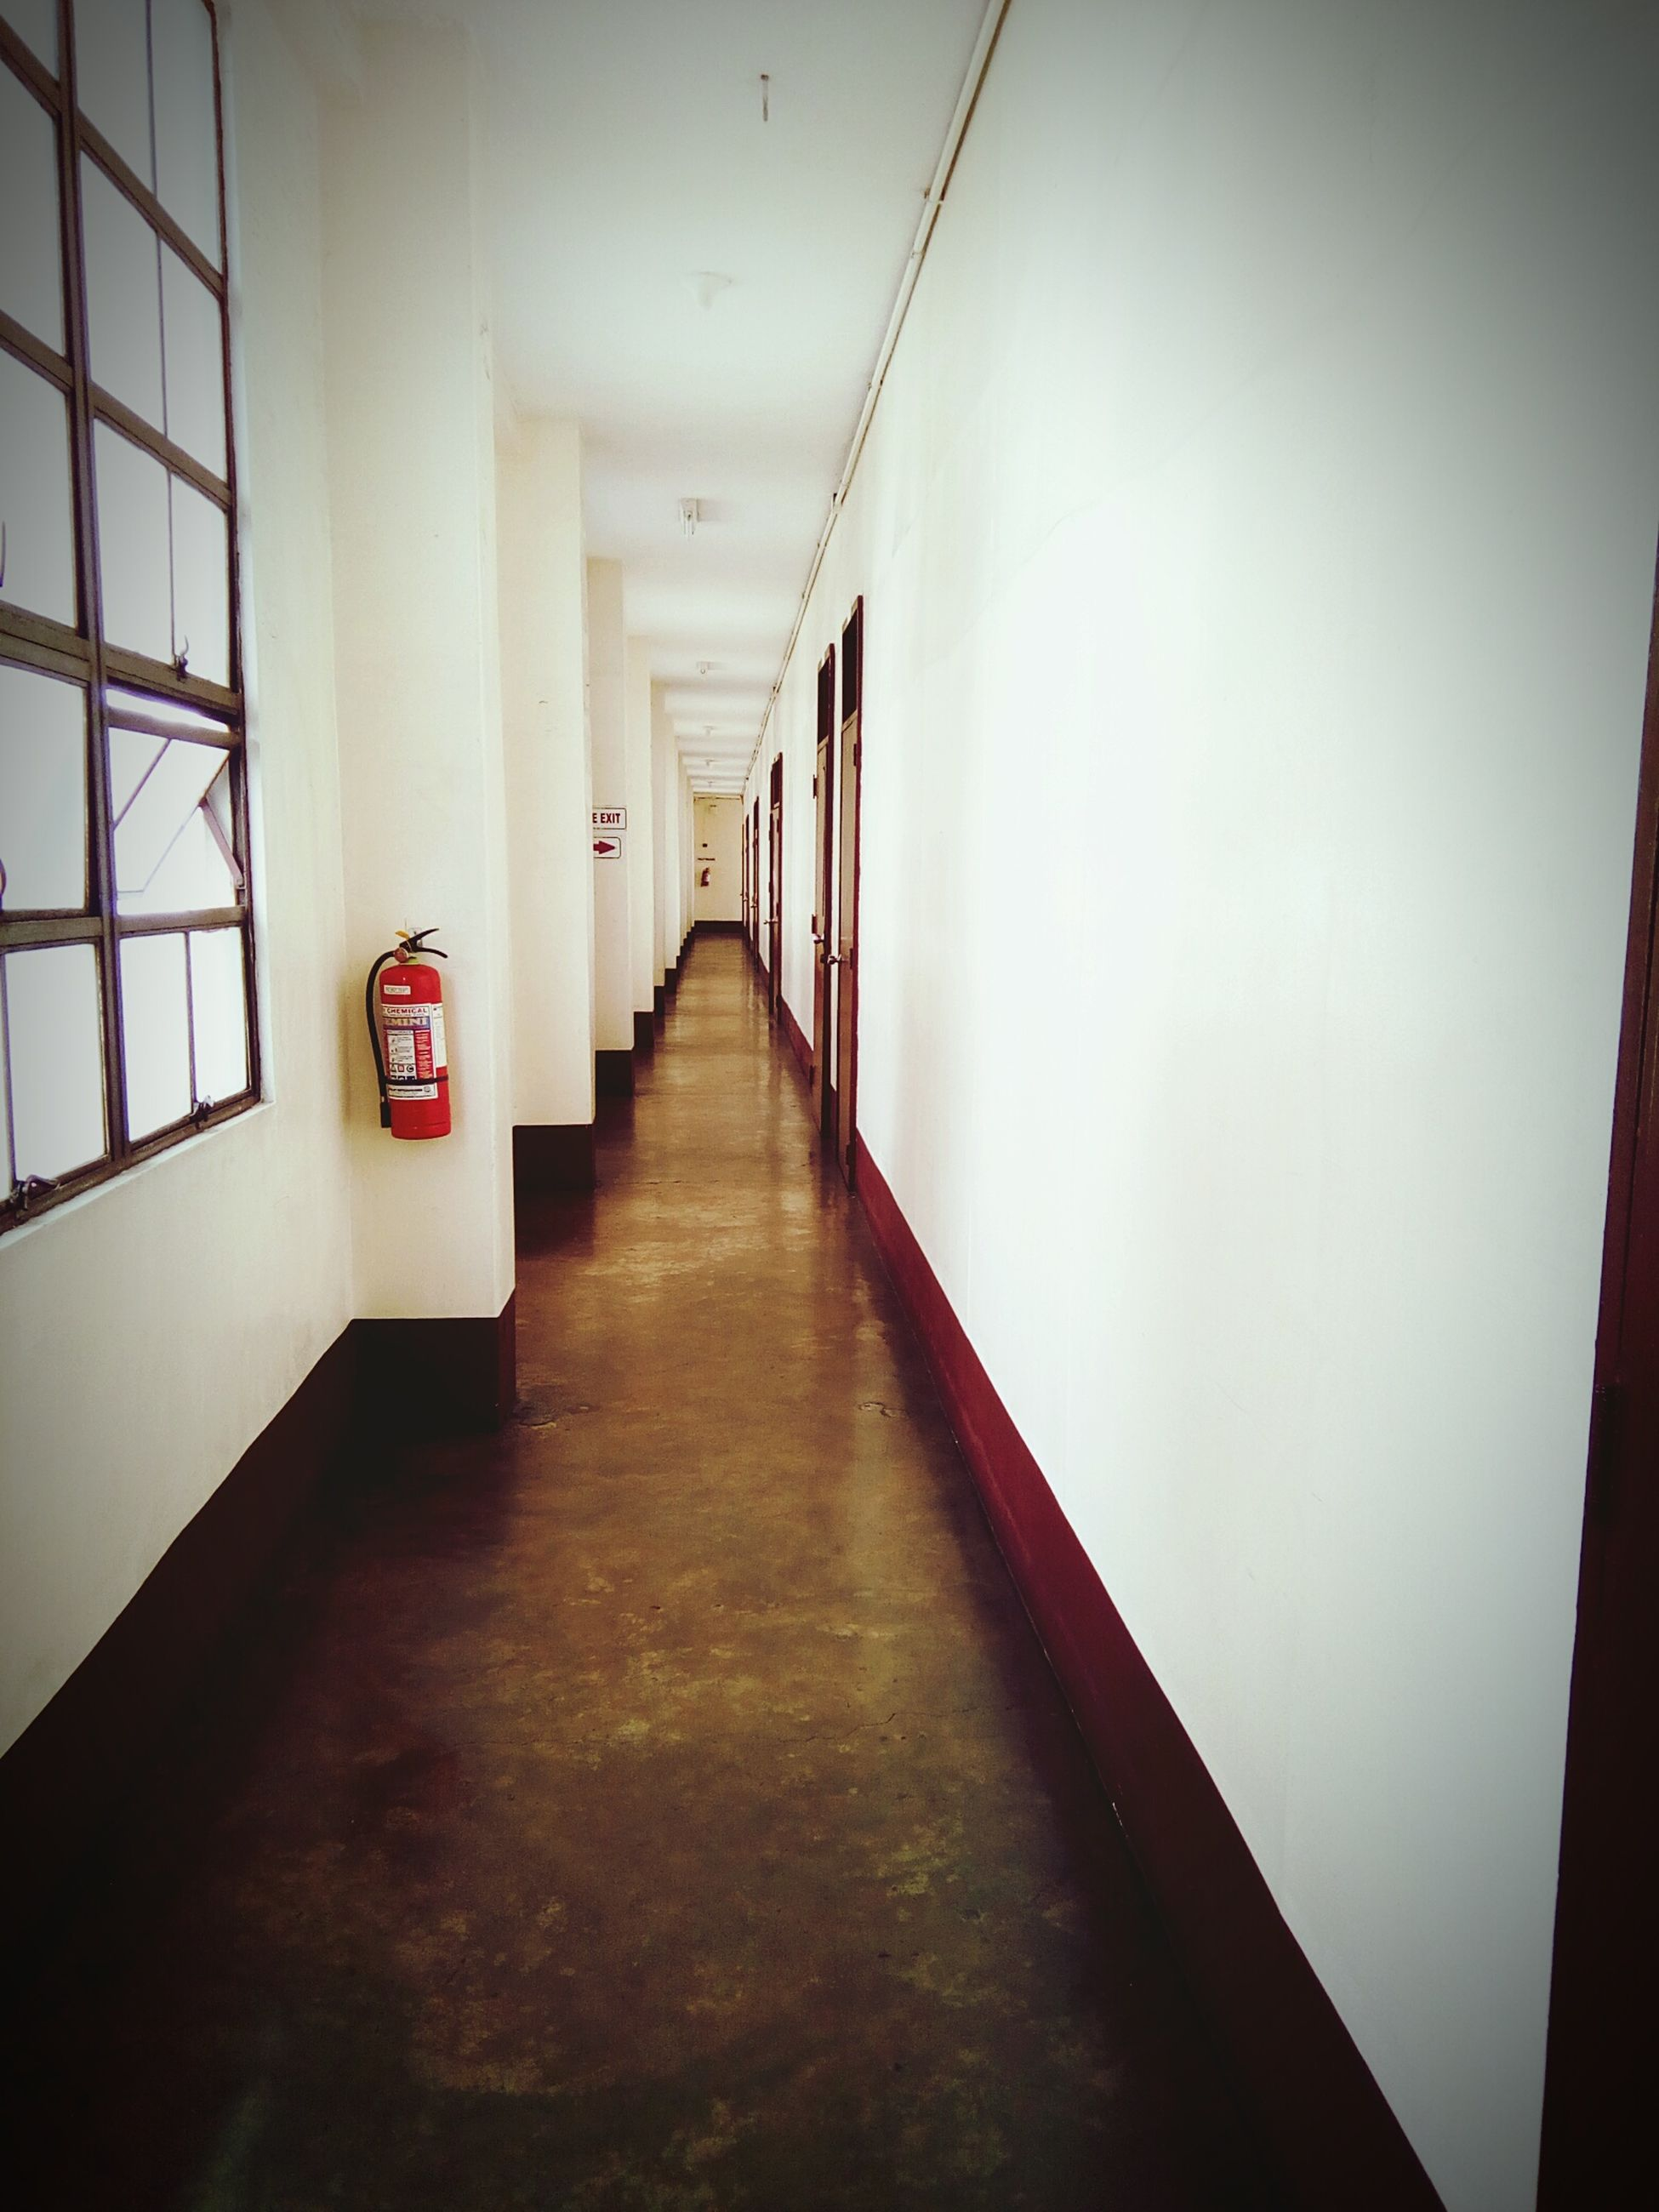 indoors, modern, flooring, diminishing perspective, corridor, empty, wall - building feature, hardwood floor, the way forward, vanishing point, surface level, narrow, pink color, no people, long